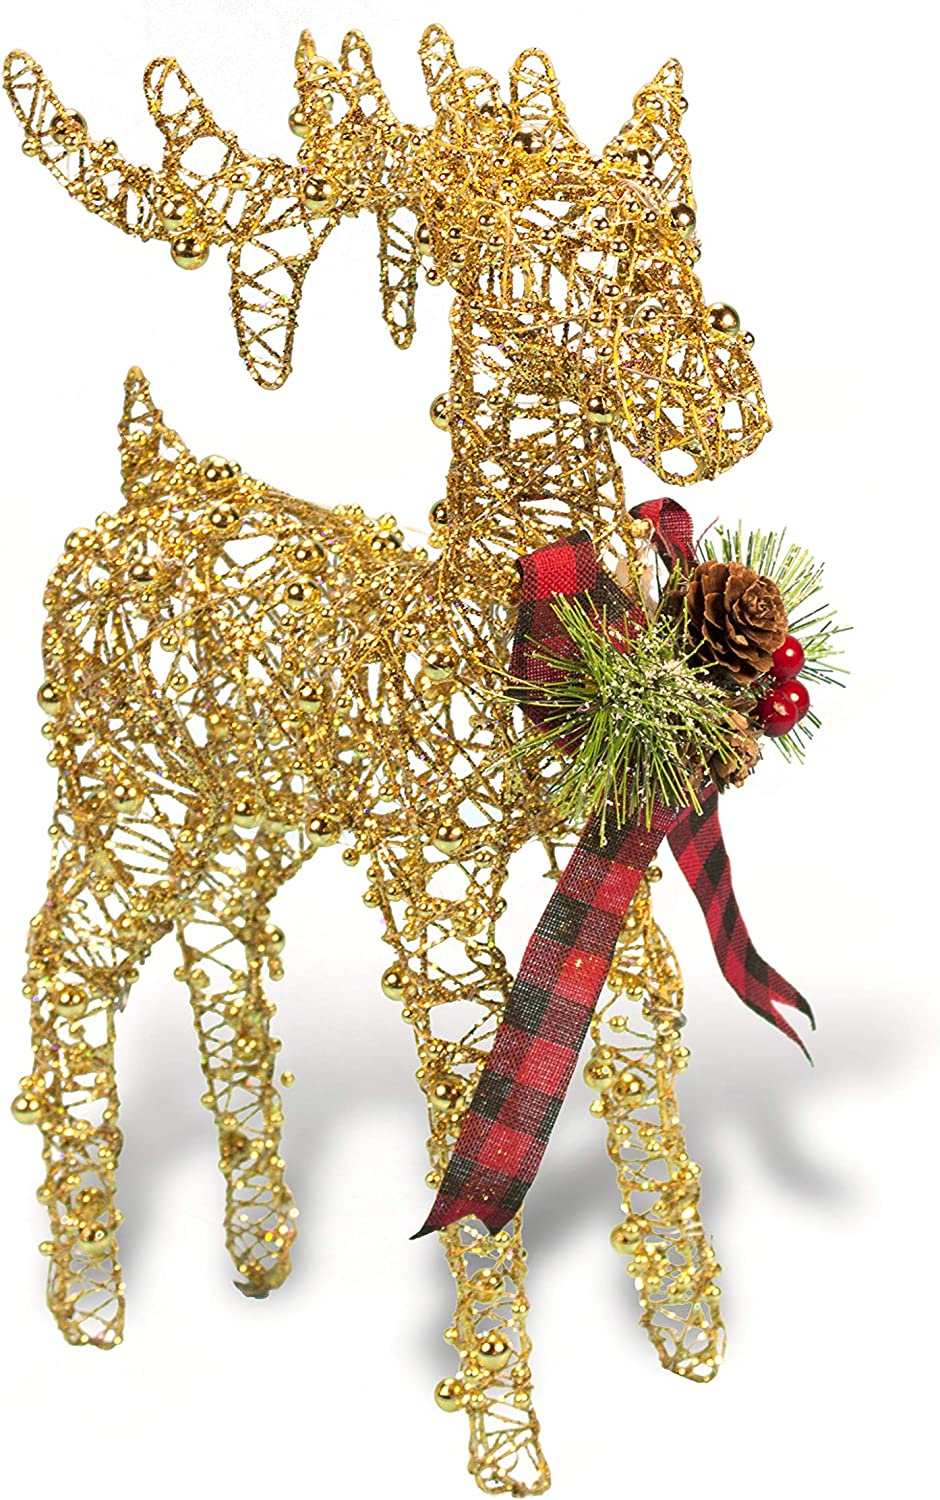 Christmas Reindeer Figurine - Glittery Beaded Metal Wire Reindeer - with Plaid Bow & Holiday Floral Accents (Gold)